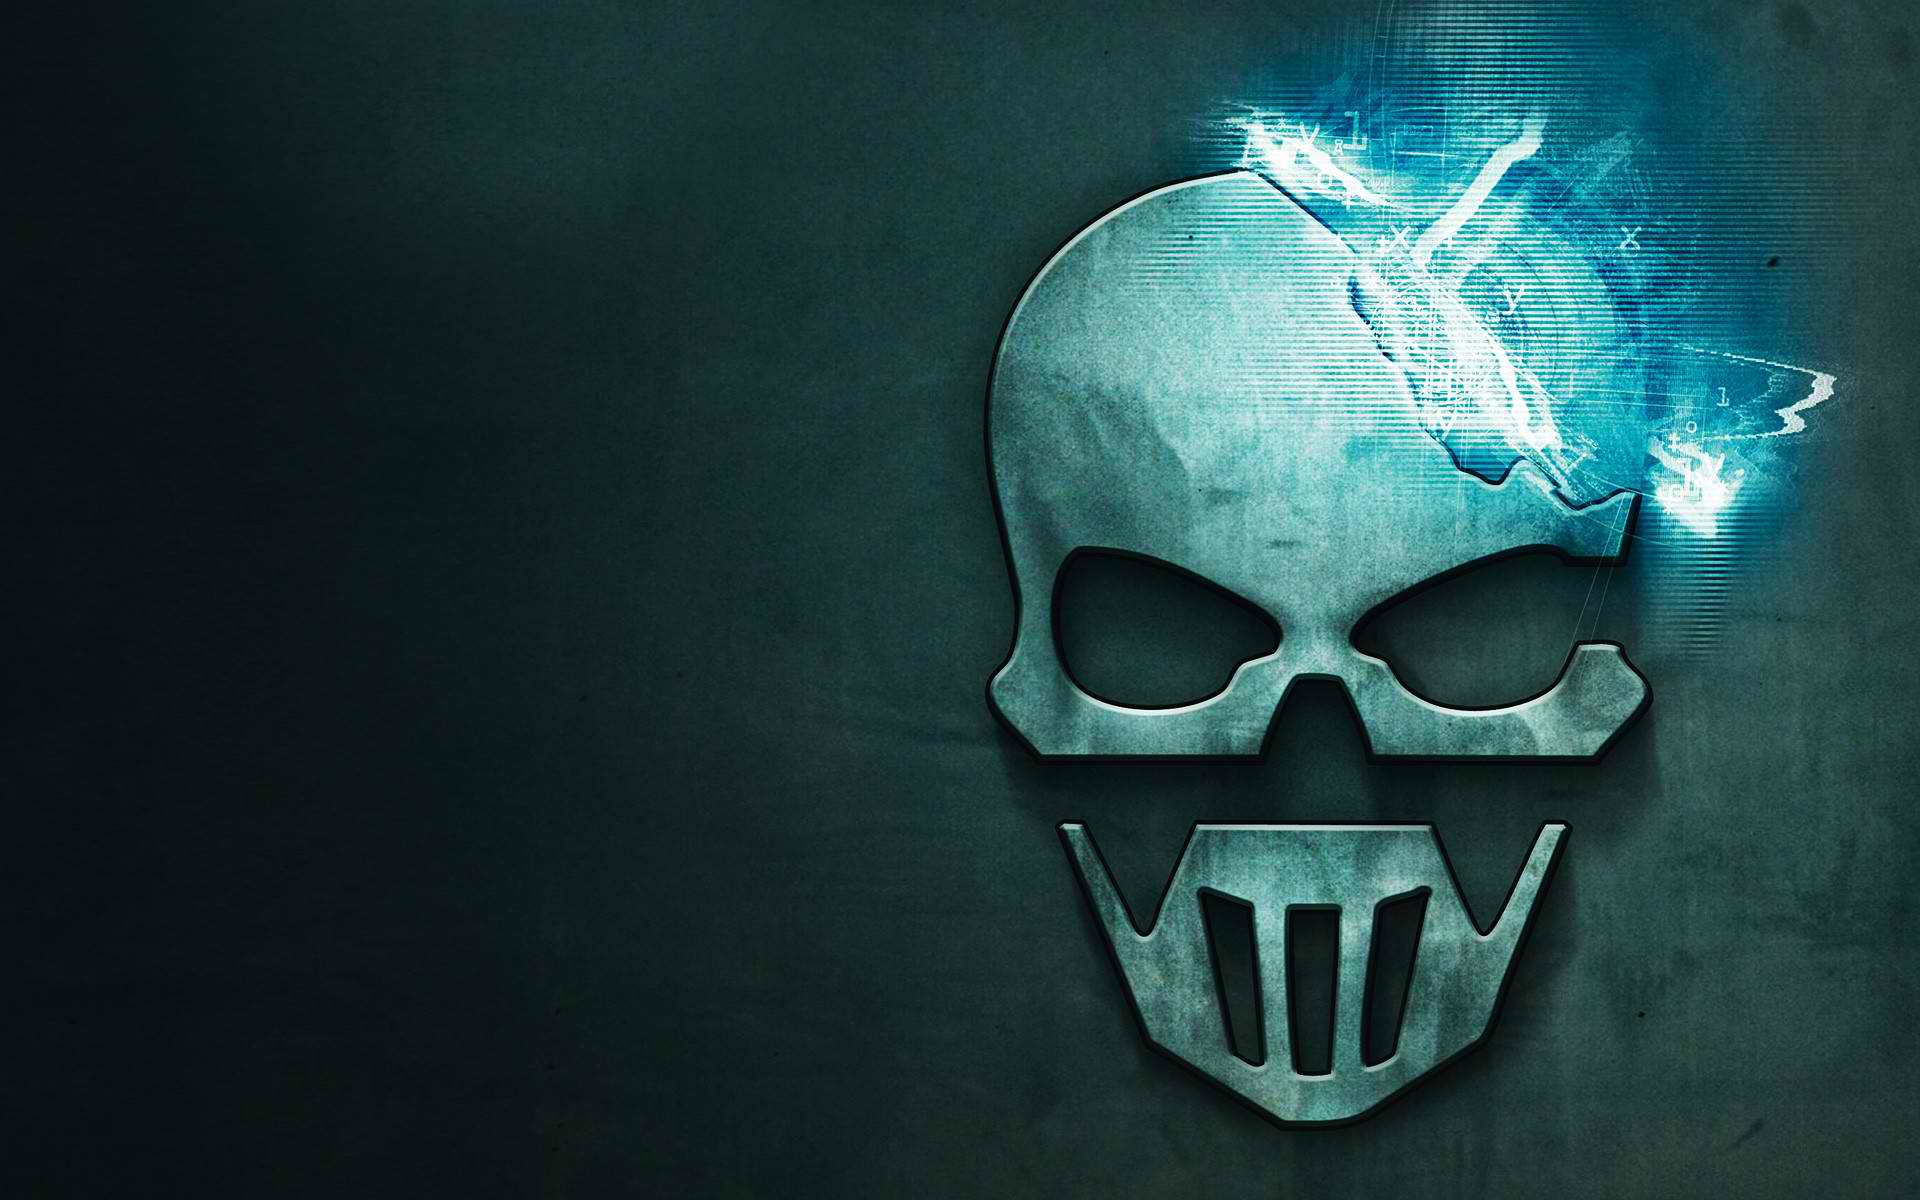 wallpaper4me com wallpaper ghost recon future soldier 1920x1200